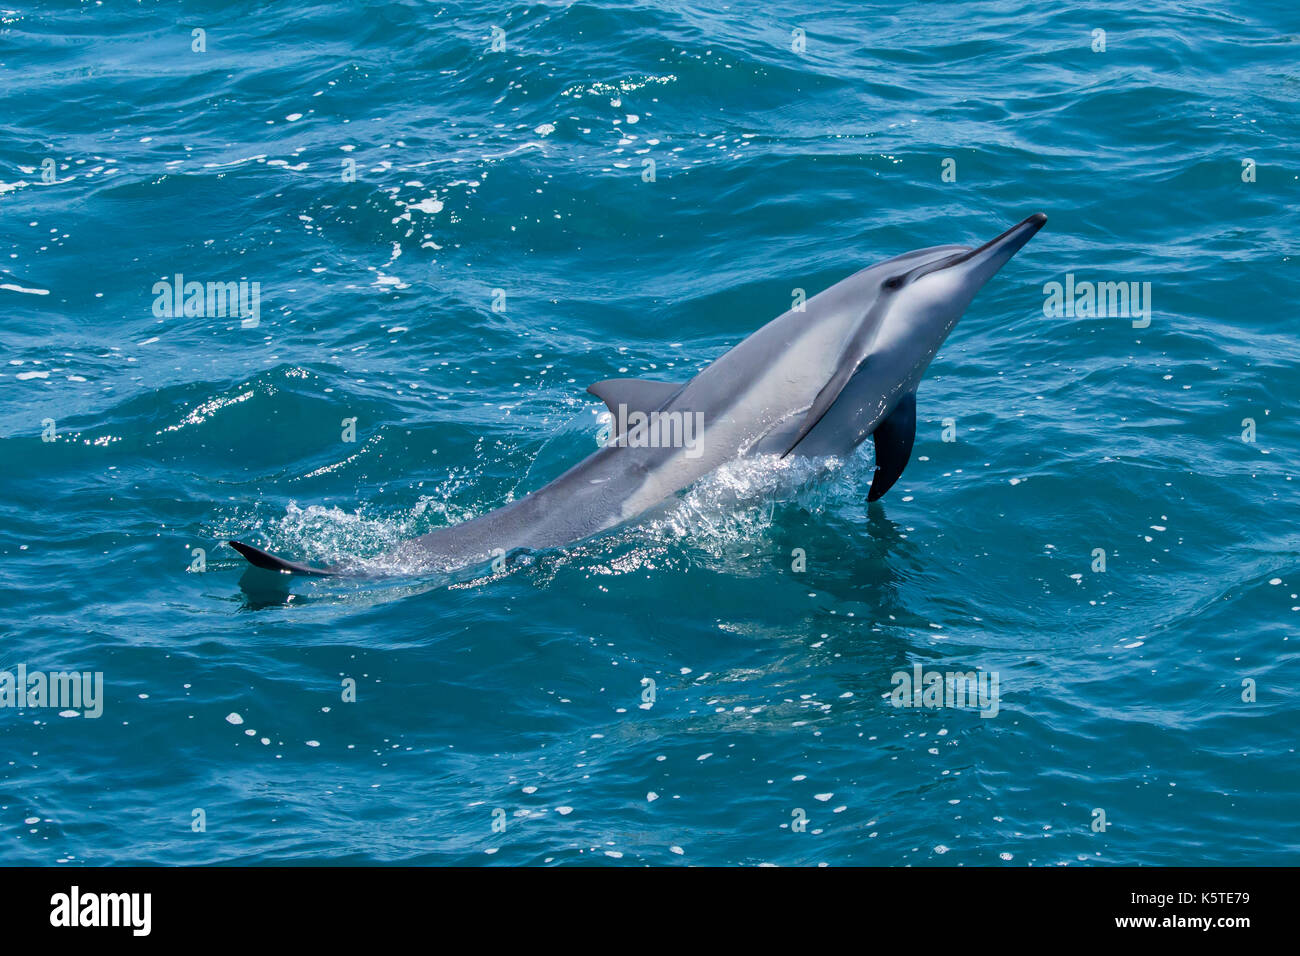 Gray's Spinner Dolphin or Hawaiian Spinner Dolphin (Stenella longirostris) making a splash in the Pacific Ocean off the east coast of Taiwan - Stock Image